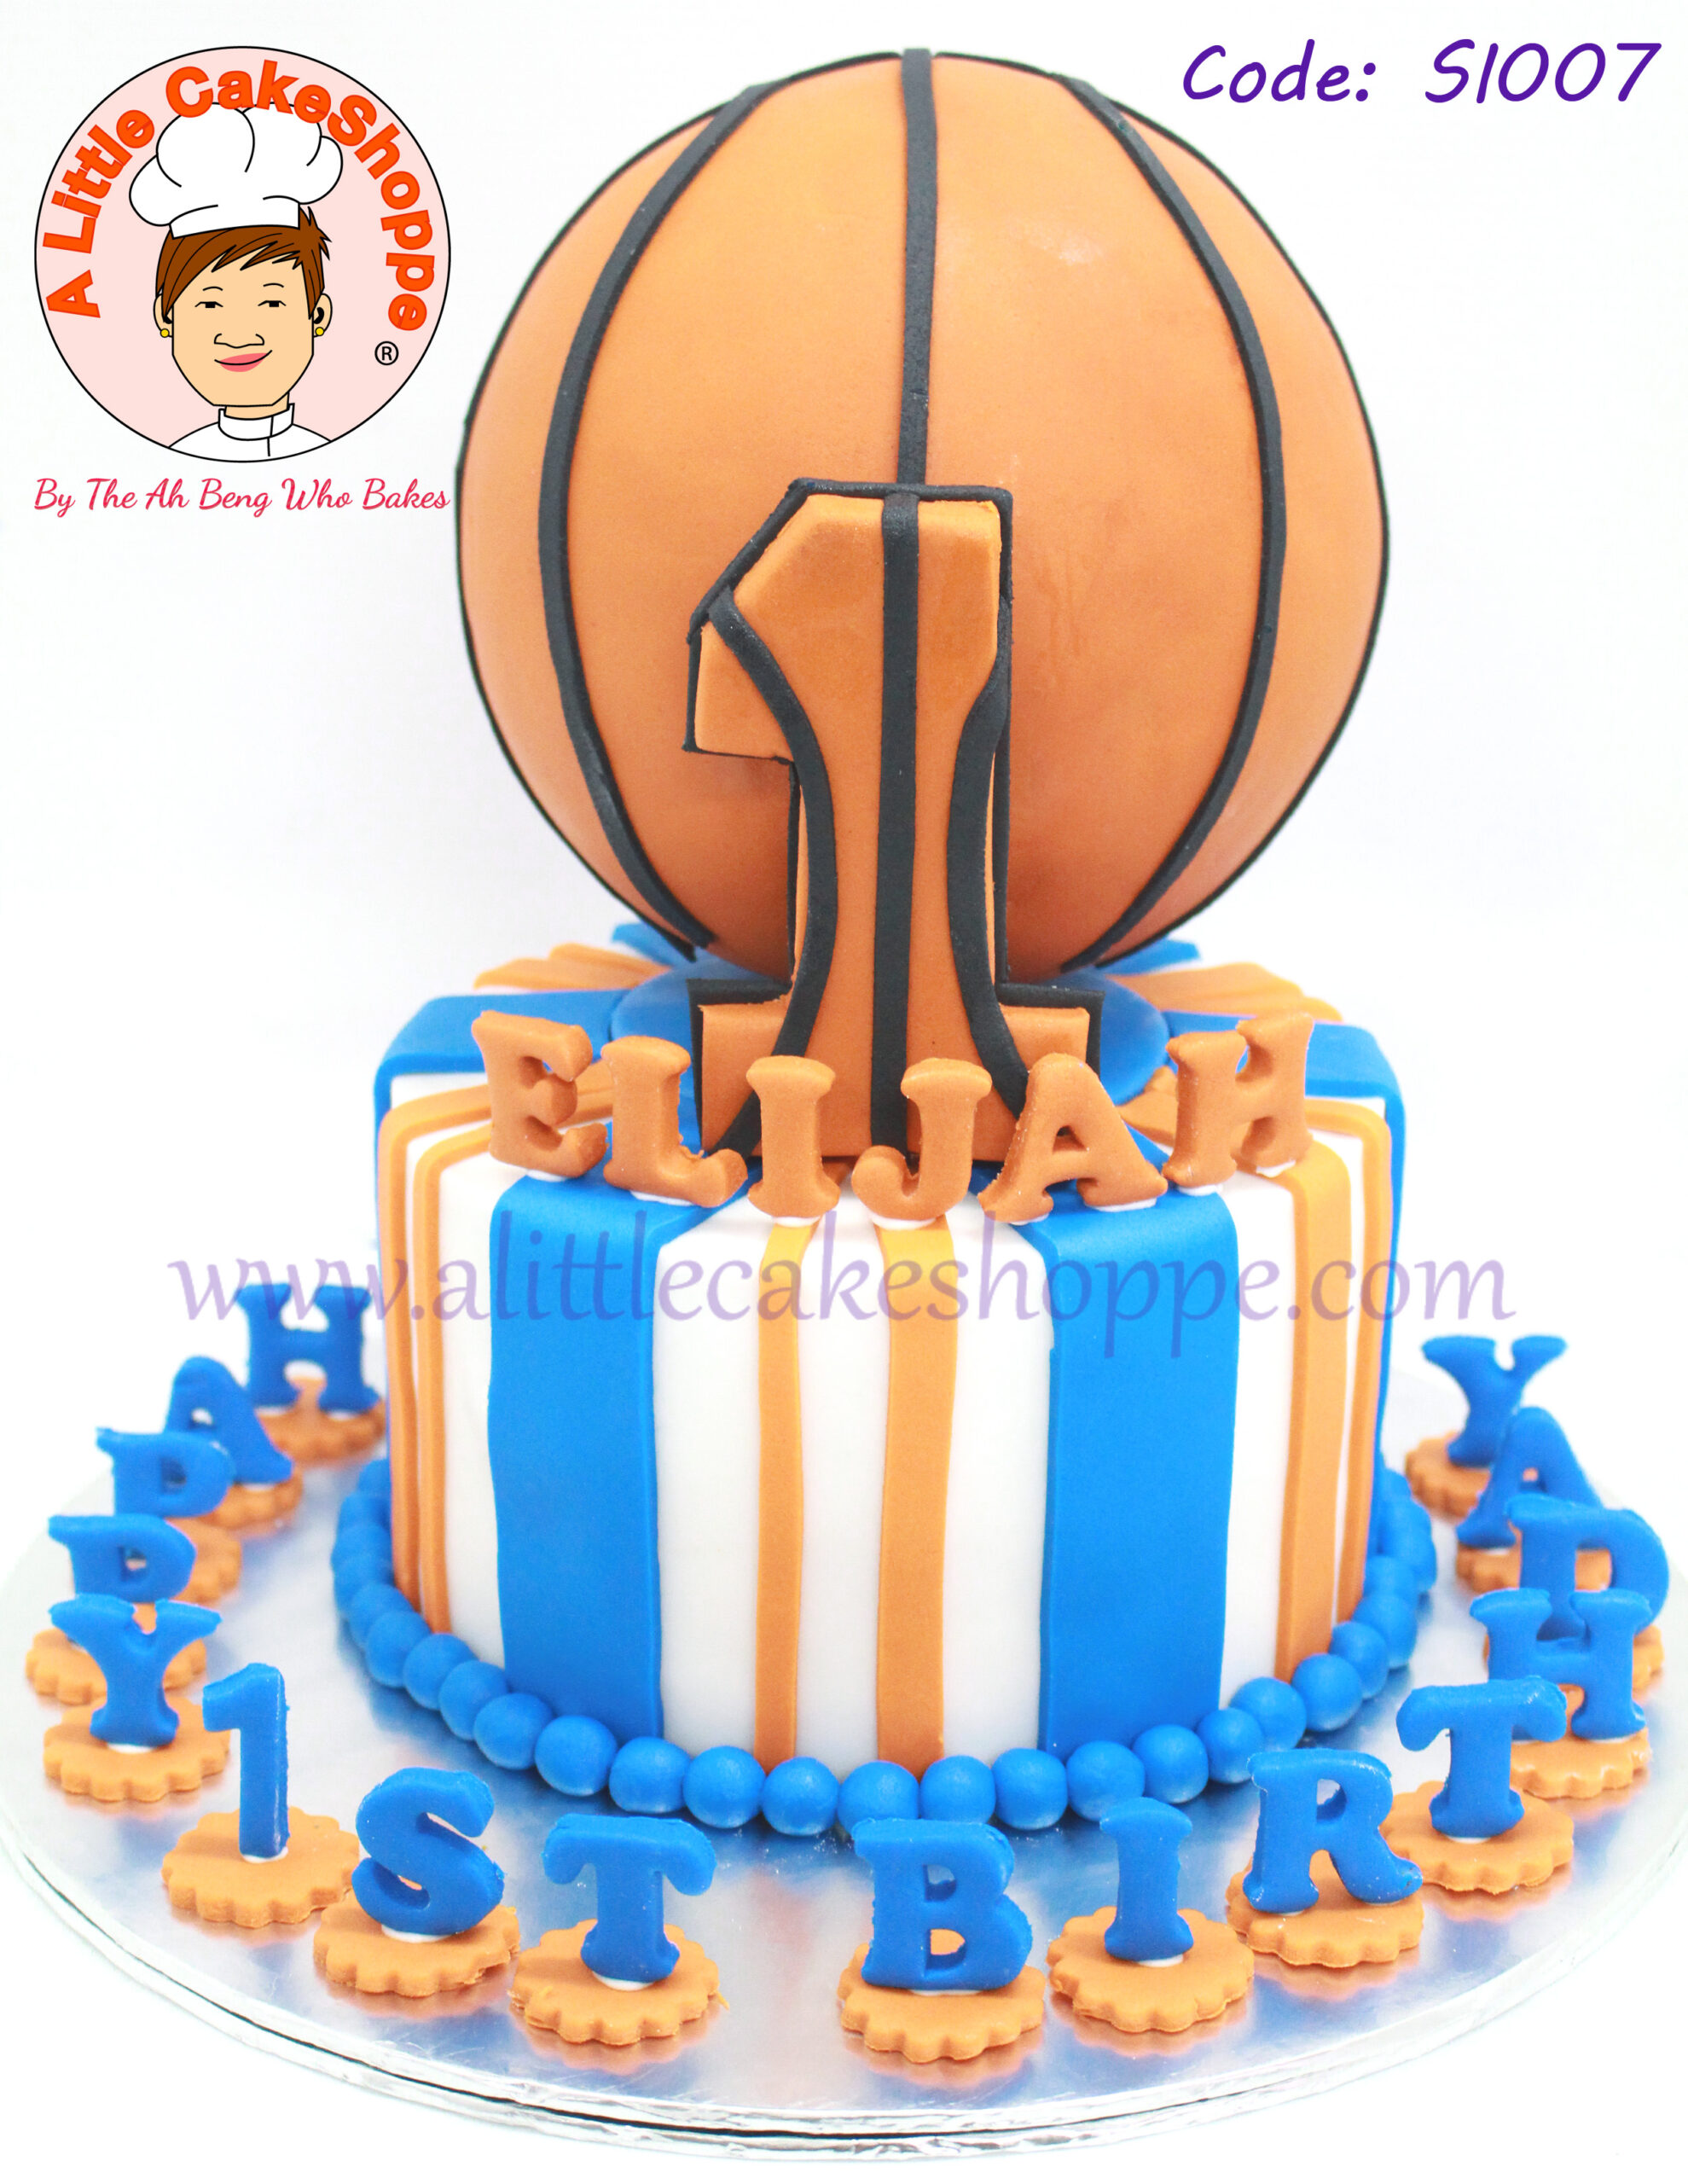 Best Customised Cake Singapore custom cake 2D 3D birthday cake cupcakes desserts wedding corporate events anniversary 1st birthday 21st birthday fondant fresh cream buttercream cakes alittlecakeshoppe a little cake shoppe compliments review singapore bakers SG cakeshop ah beng who bakes sports basketball